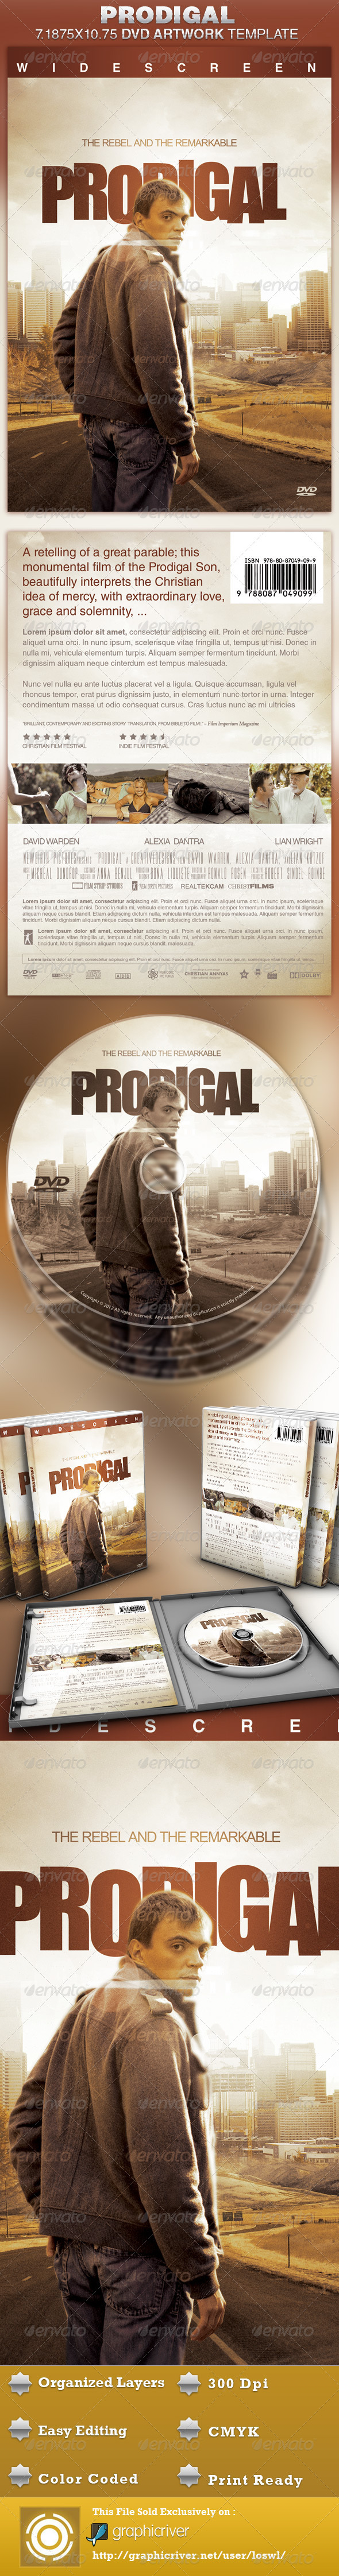 Prodigal DVD Artwork Template - CD & DVD artwork Print Templates